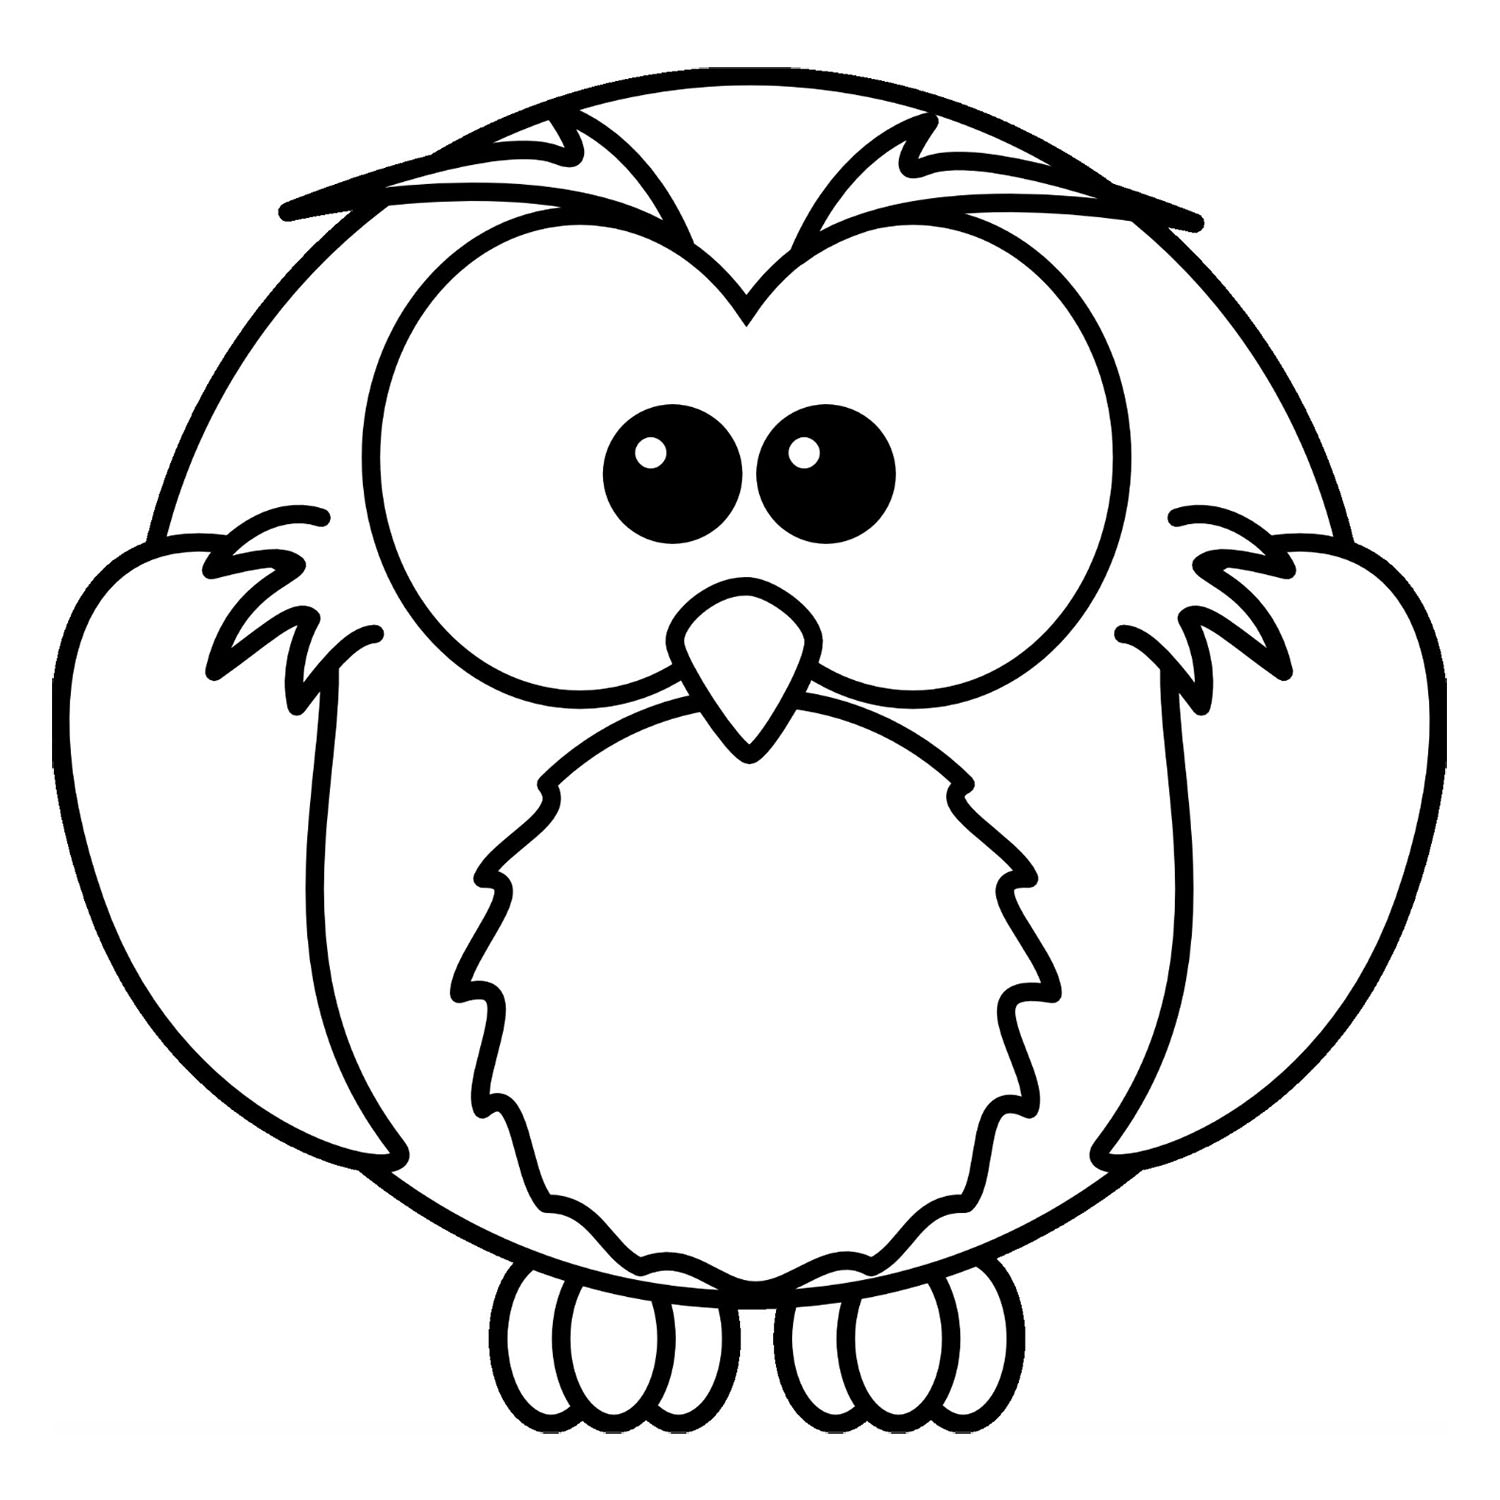 printable images of birds bluebird coloring page art starts for kids of images birds printable